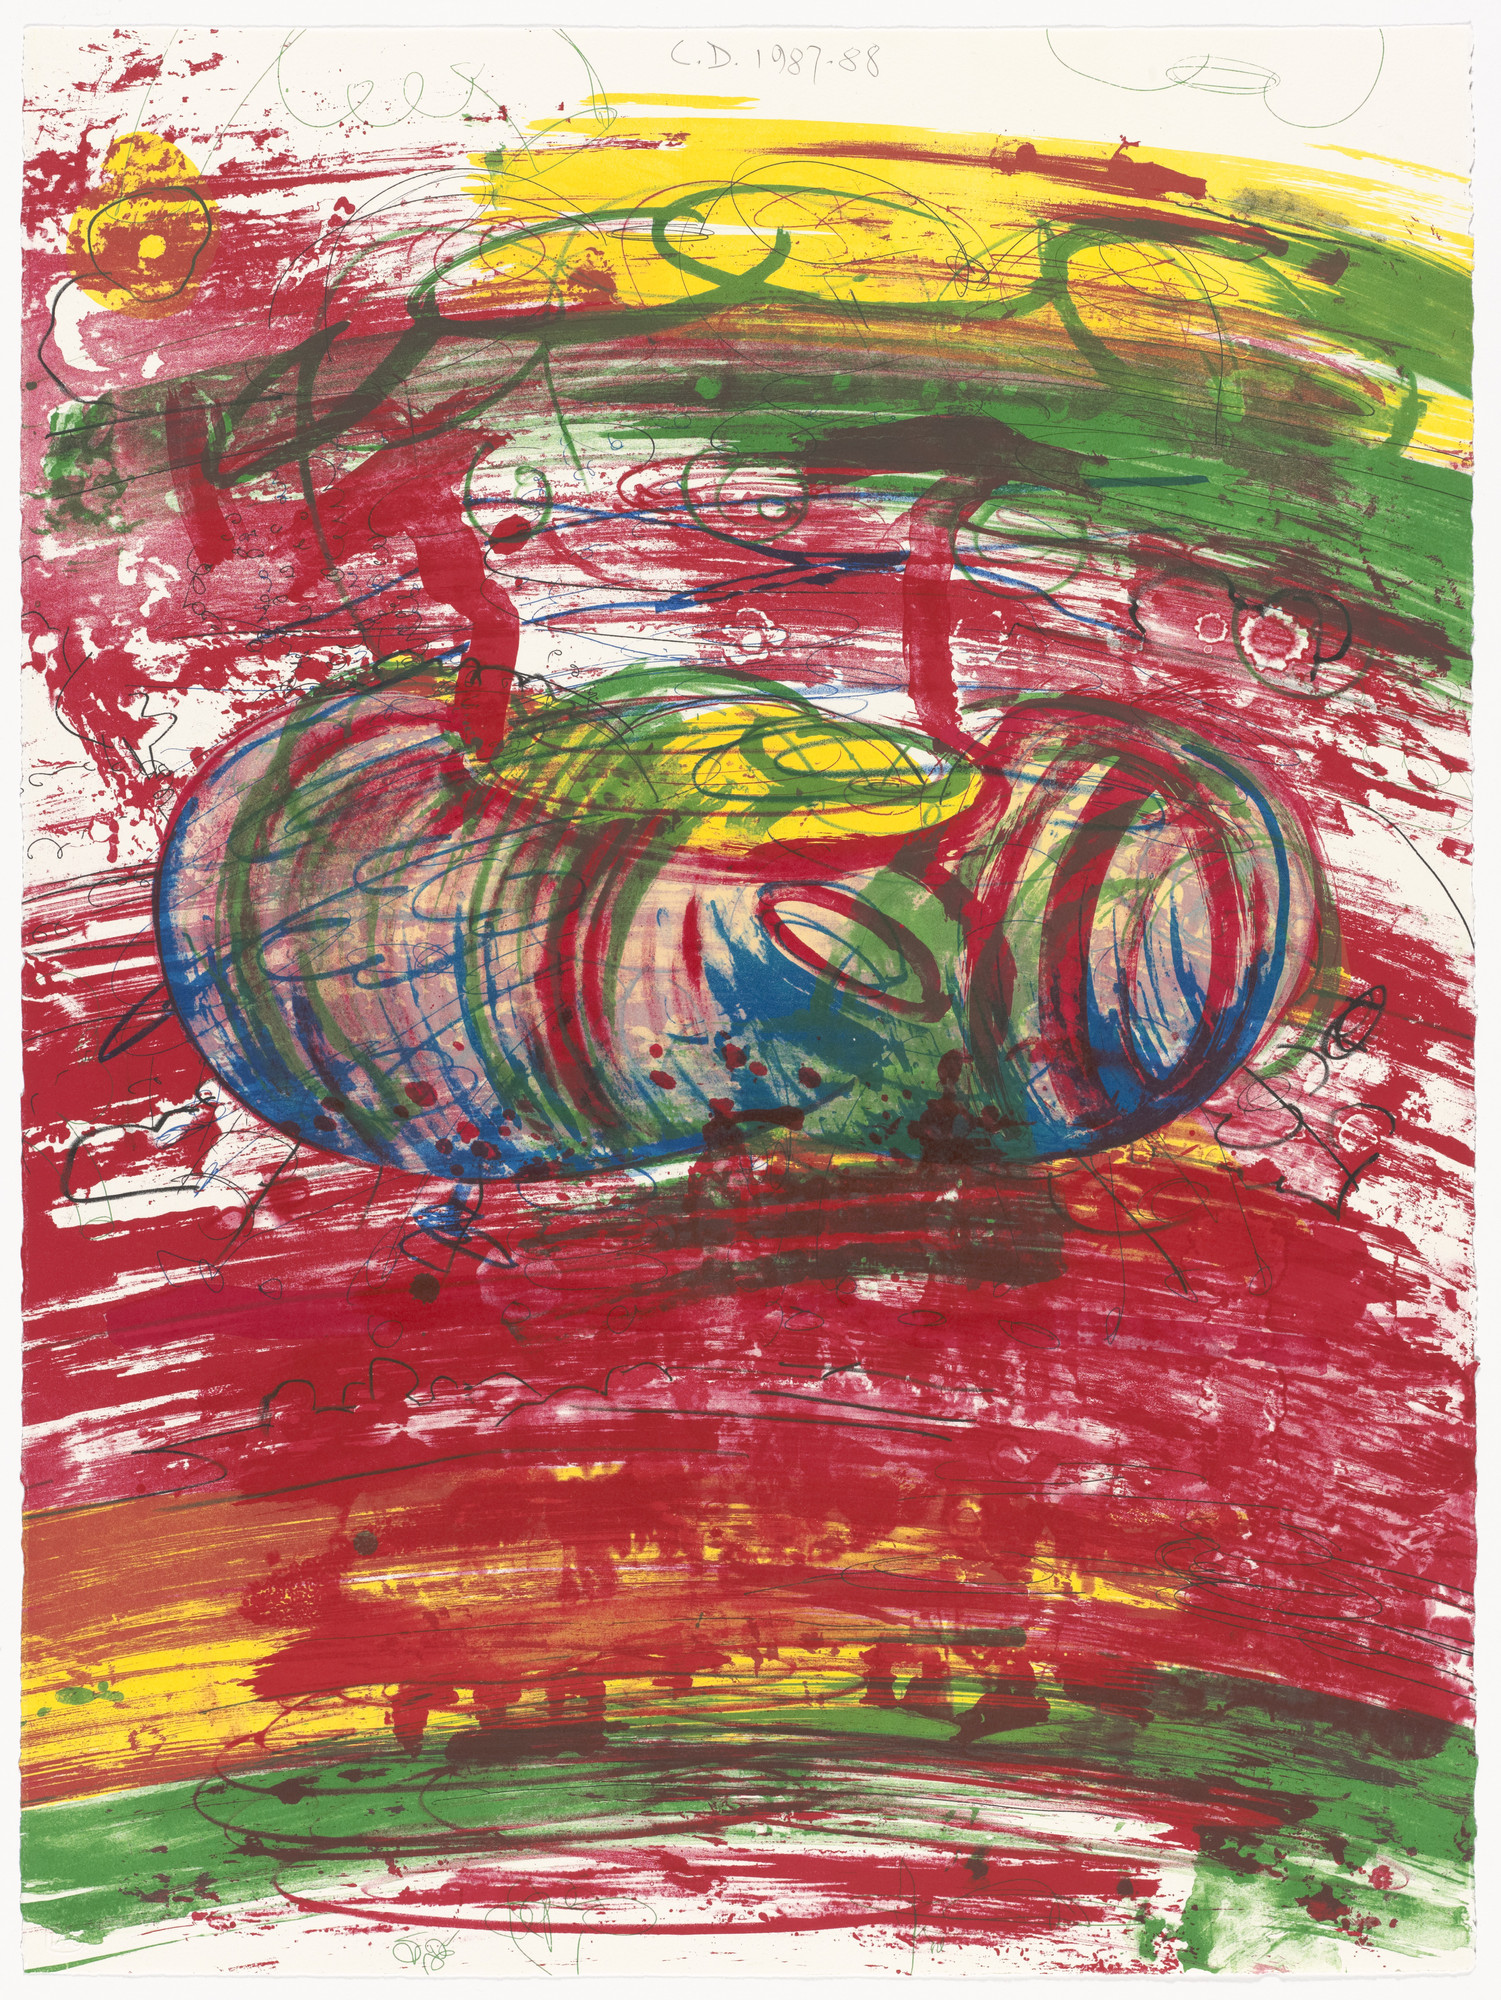 Carroll Dunham. Red (1st) from Red Shift. 1987–88